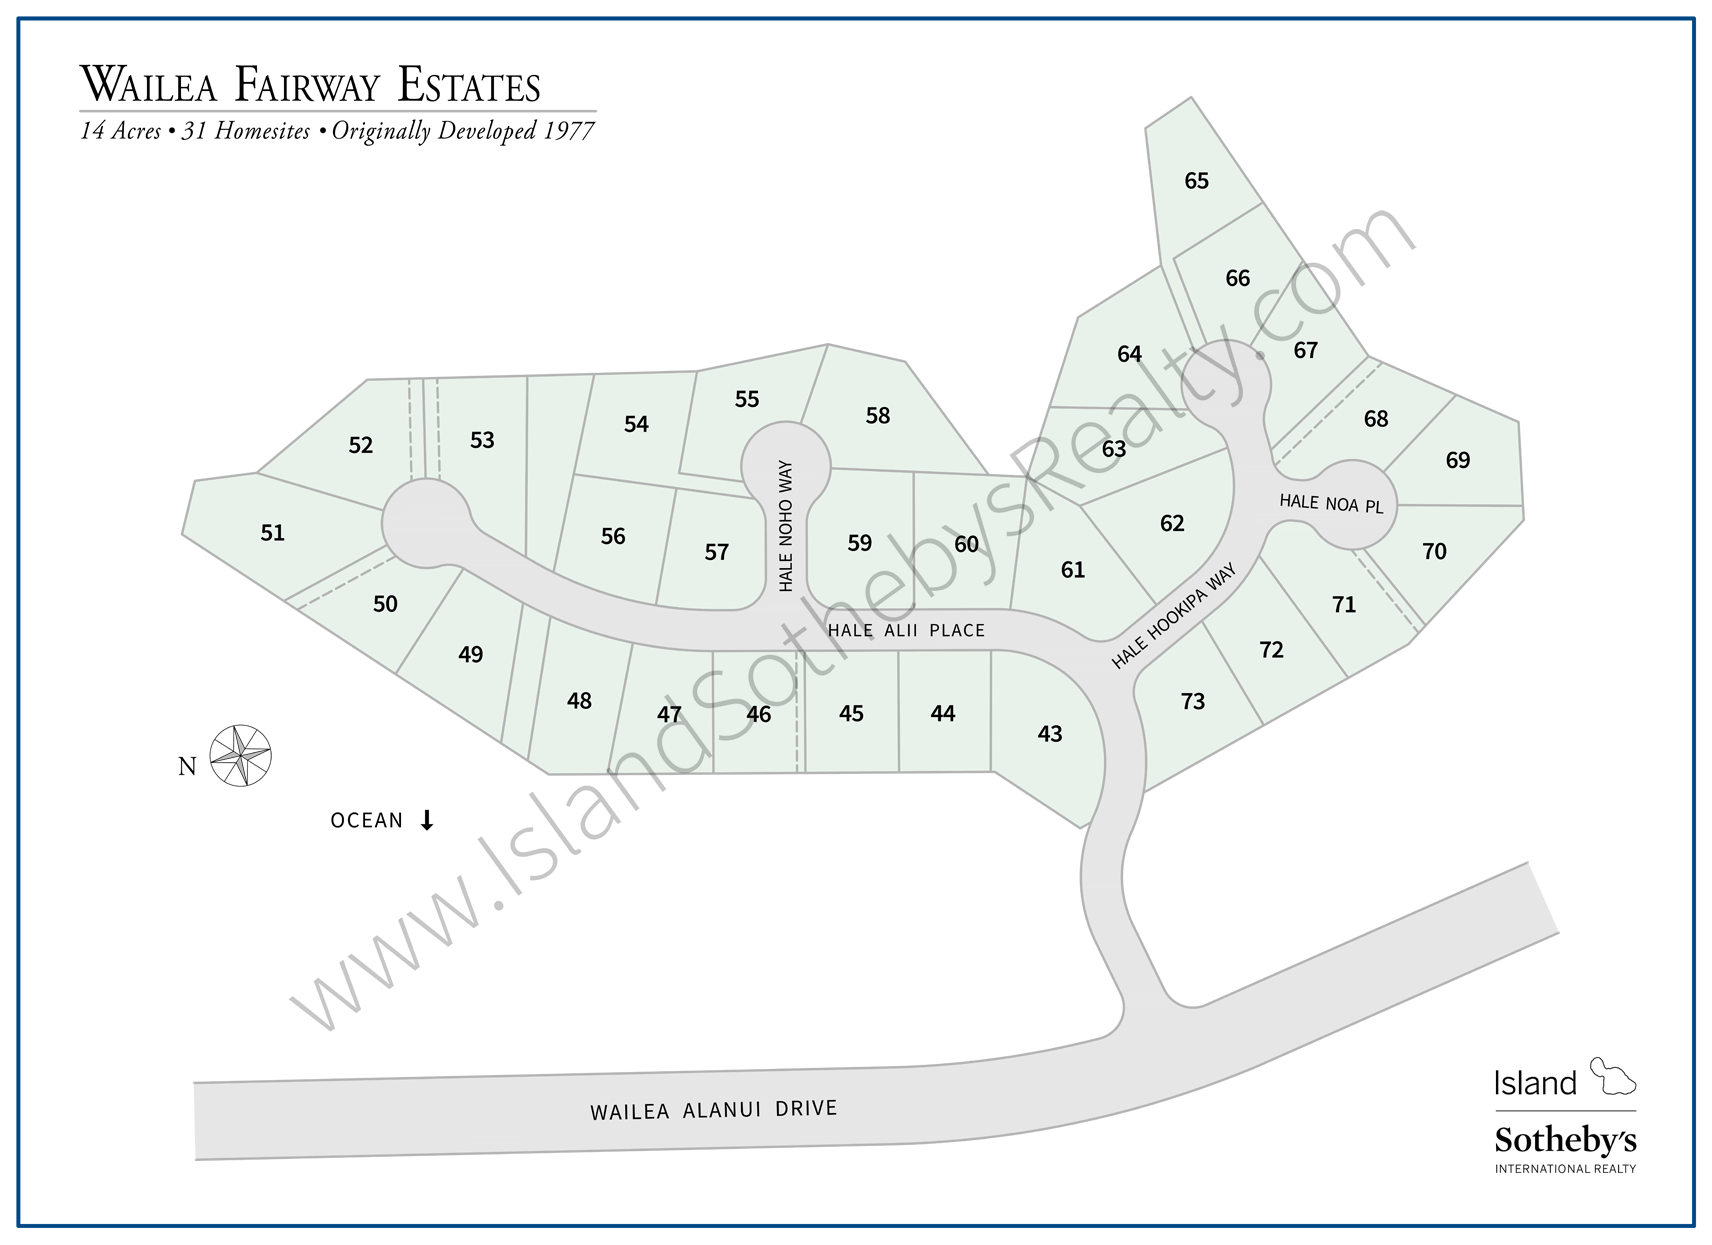 Map of Wailea Fairway Estates Maui